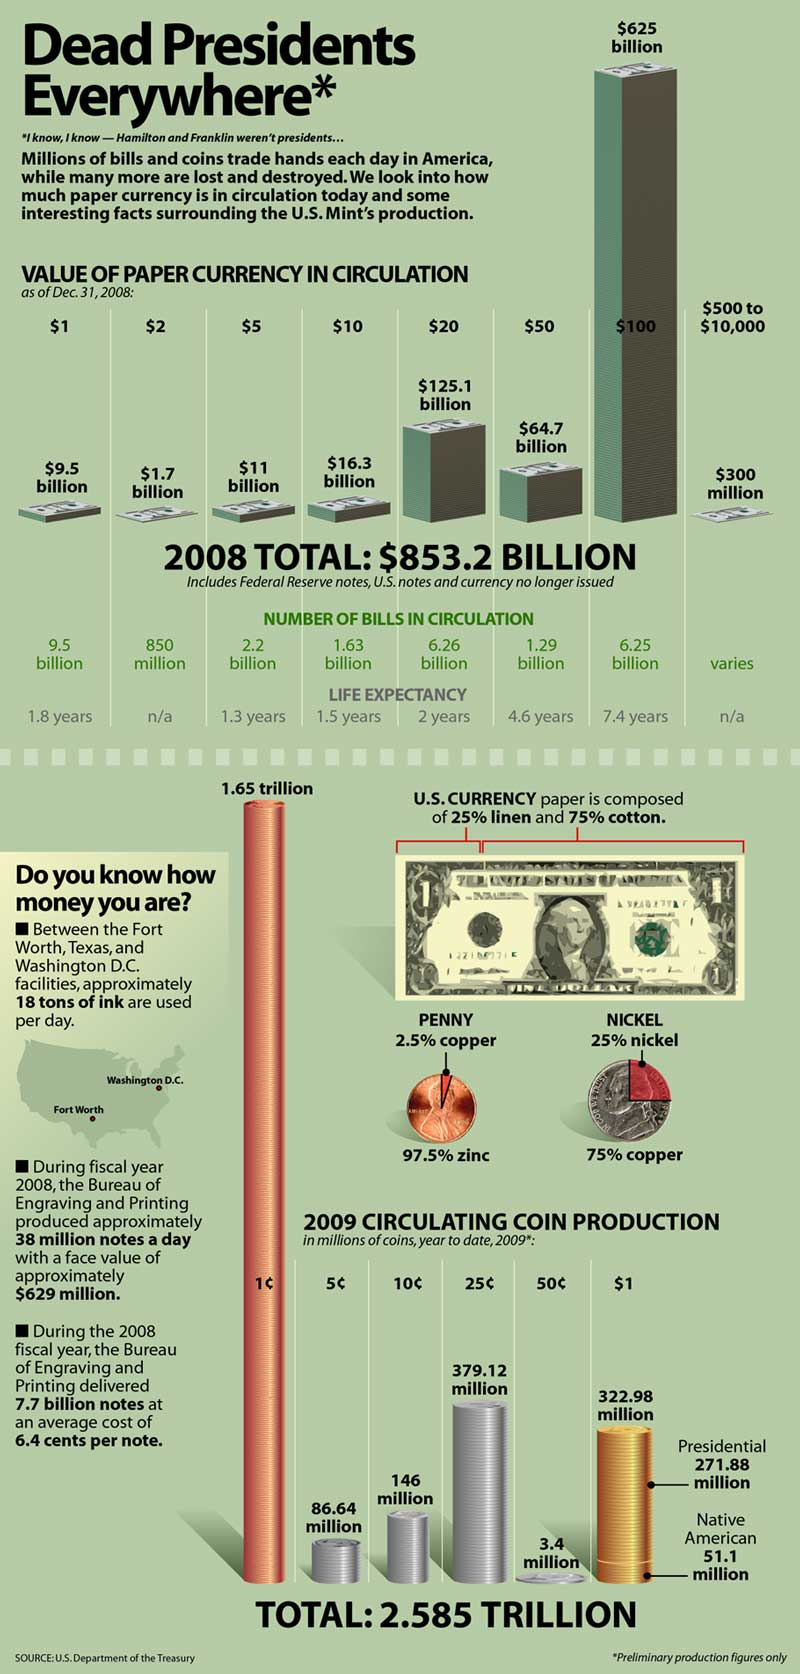 The Value of United States Currency in Circulation